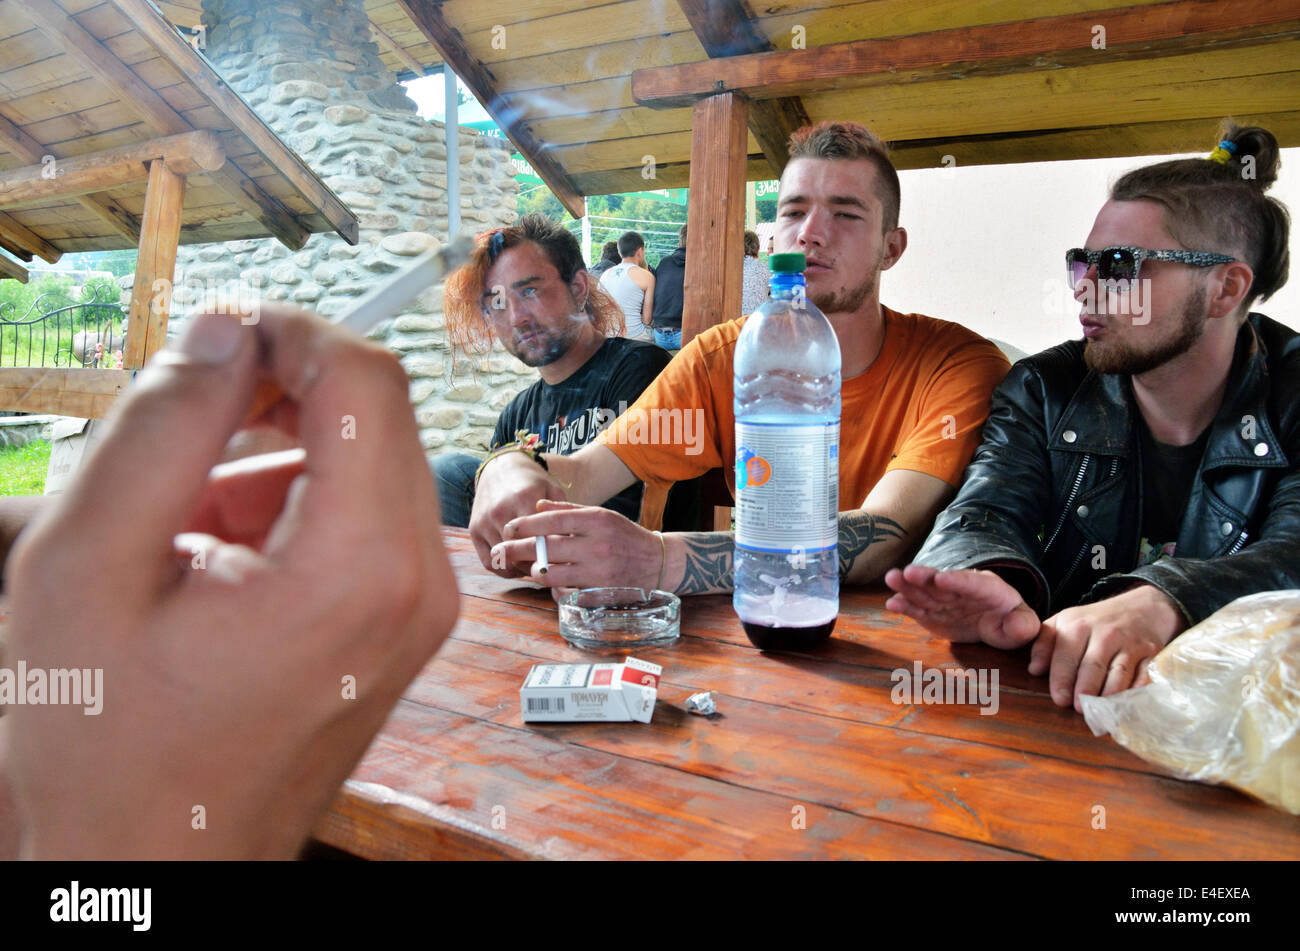 Carpathian Mountains, Ukraine. 8th July, 2014. Group of punks resting in the caff on the Shypit Festival / Festival - Stock Image